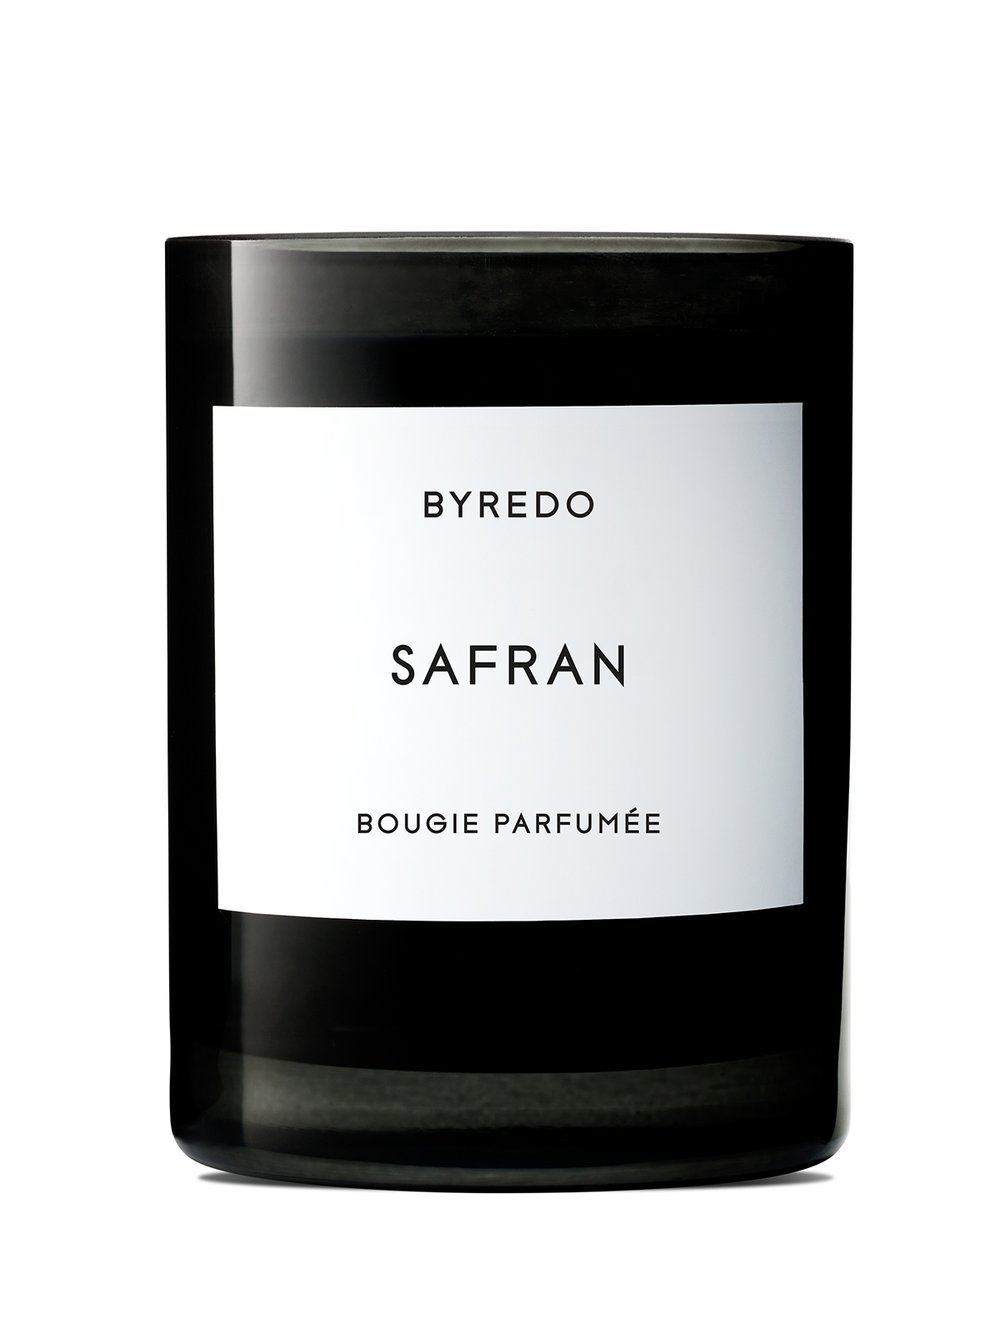 BYREDO Safran Scented Candle  Byredo's candles are crafted in France and housed in handmade glass vessels, perfect for gifting. This 'Safran' scent will fill your home with rich notes of Saffron and Black Pepper. Tied to a base of Patchouli, Vanilla and Dark Amber, it is a warm and inviting way to welcome guests.